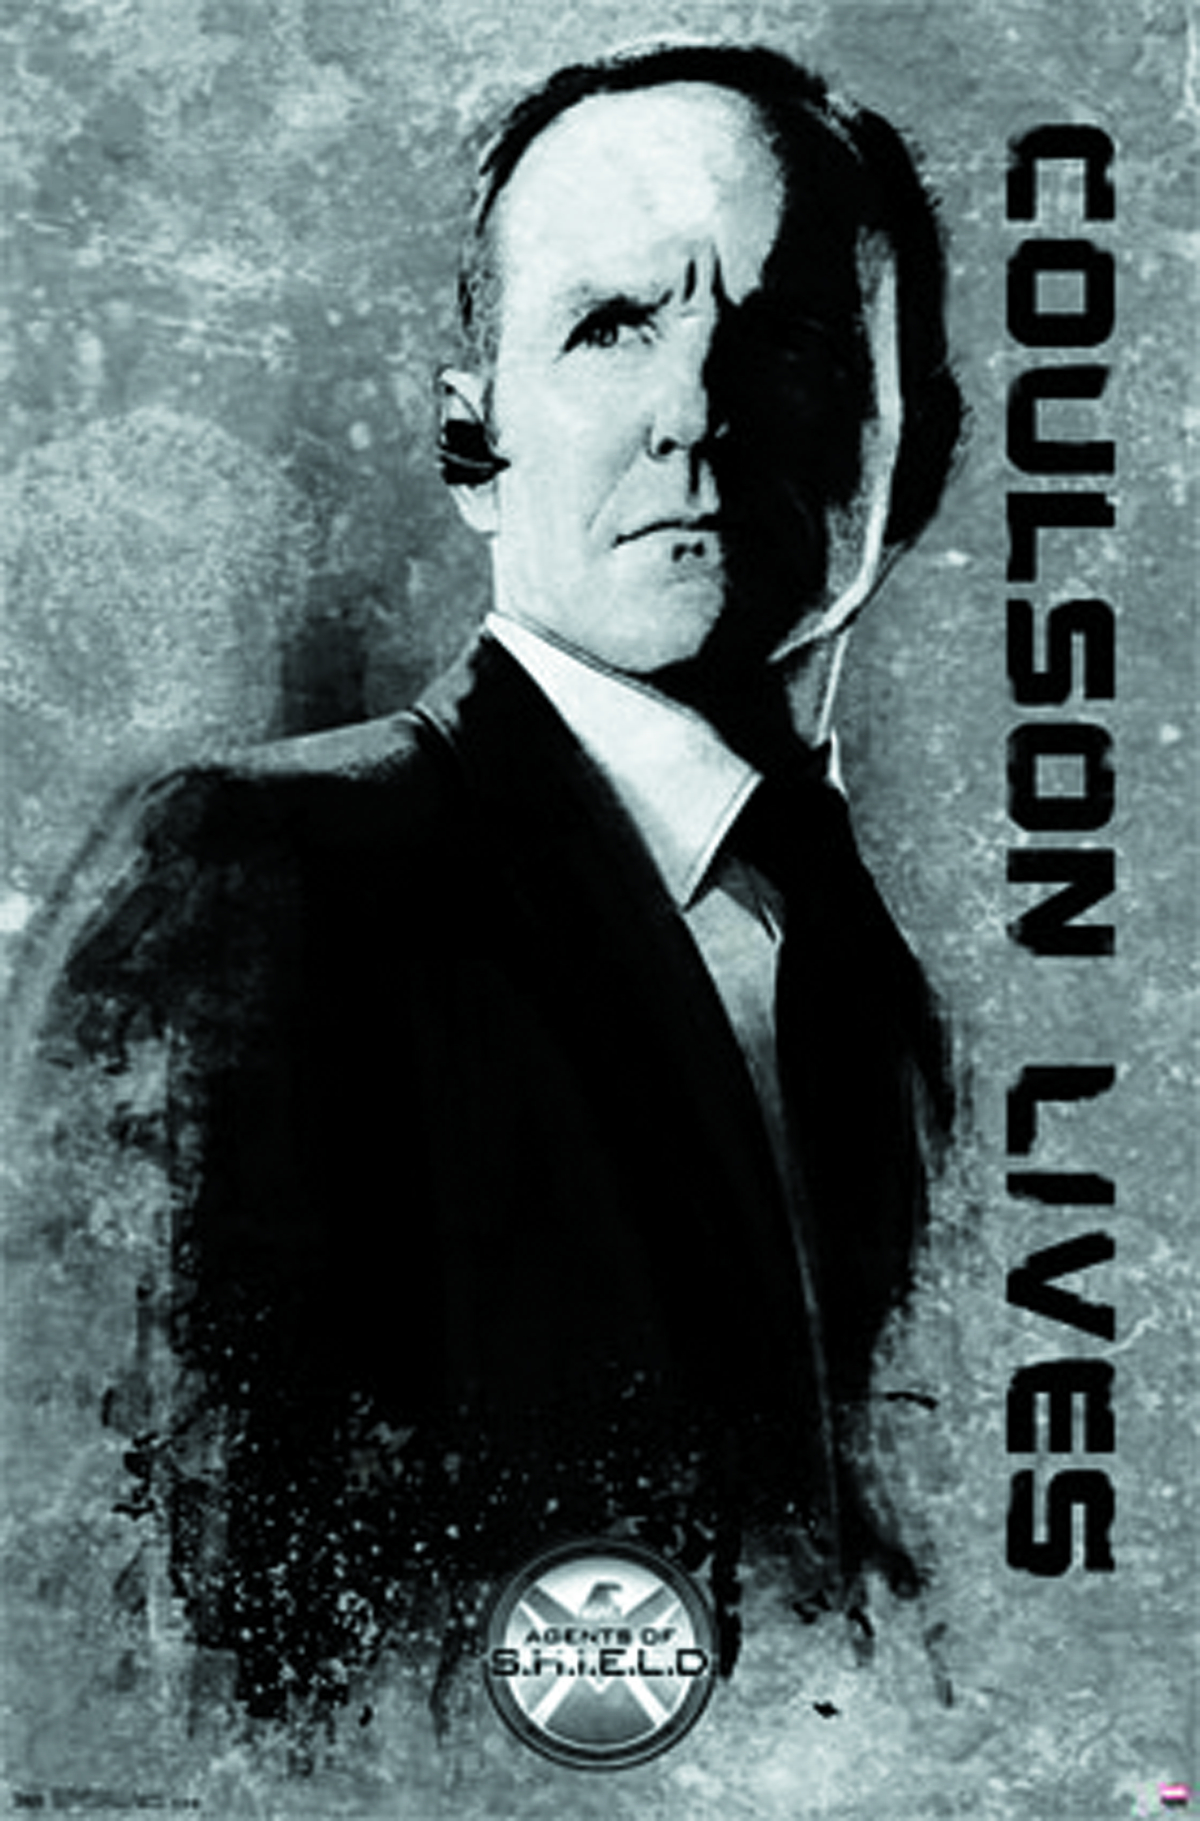 MARVEL AGENTS OF SHIELD COULSON POSTER